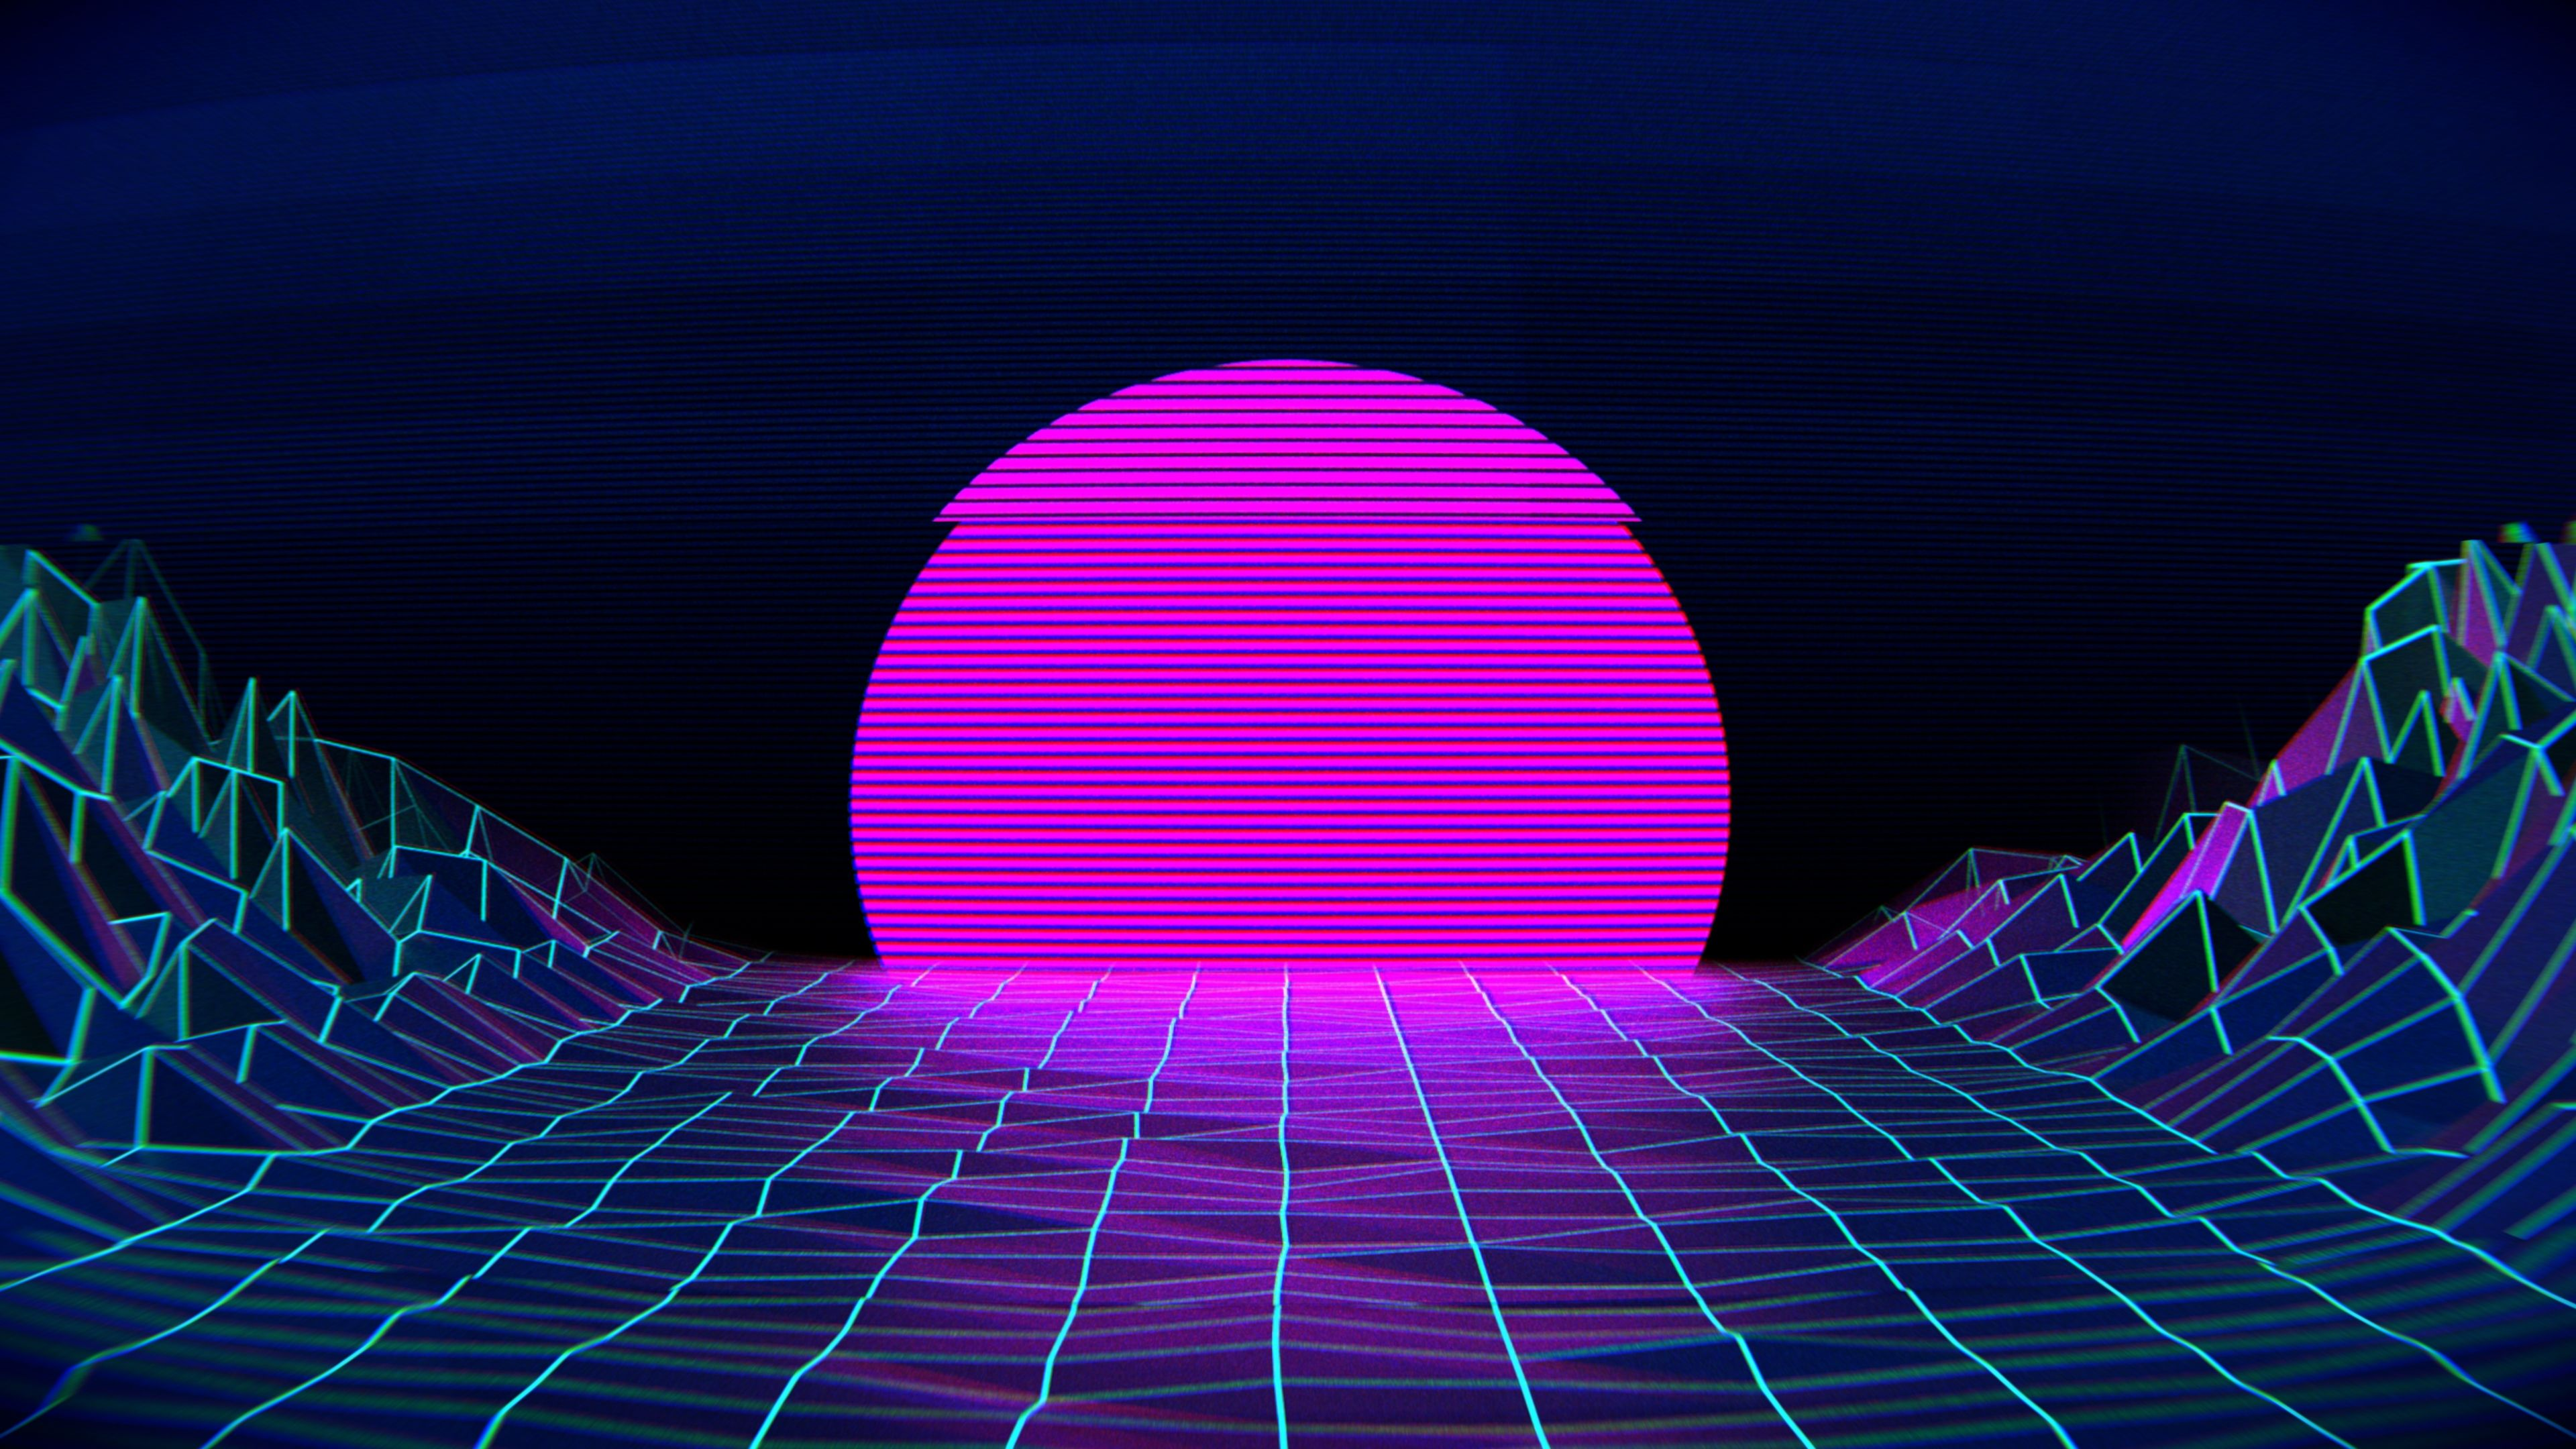 Vaporwave Wallpapers Top Free Vaporwave Backgrounds